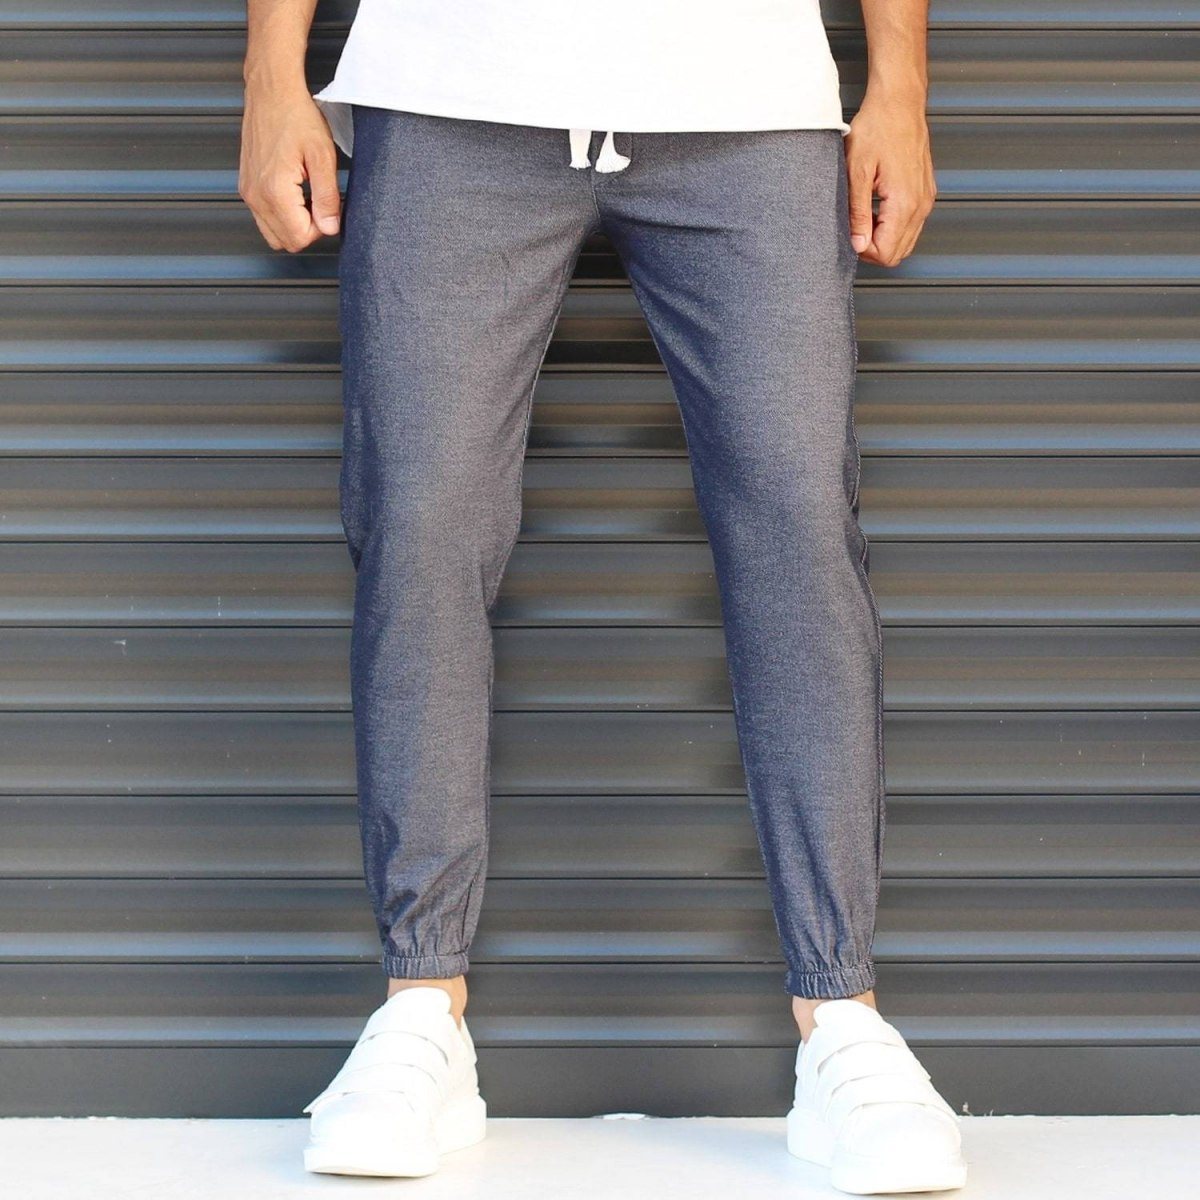 Men's Elasticated Basic Sport Pants Dark Gray Mv Premium Brand - 2